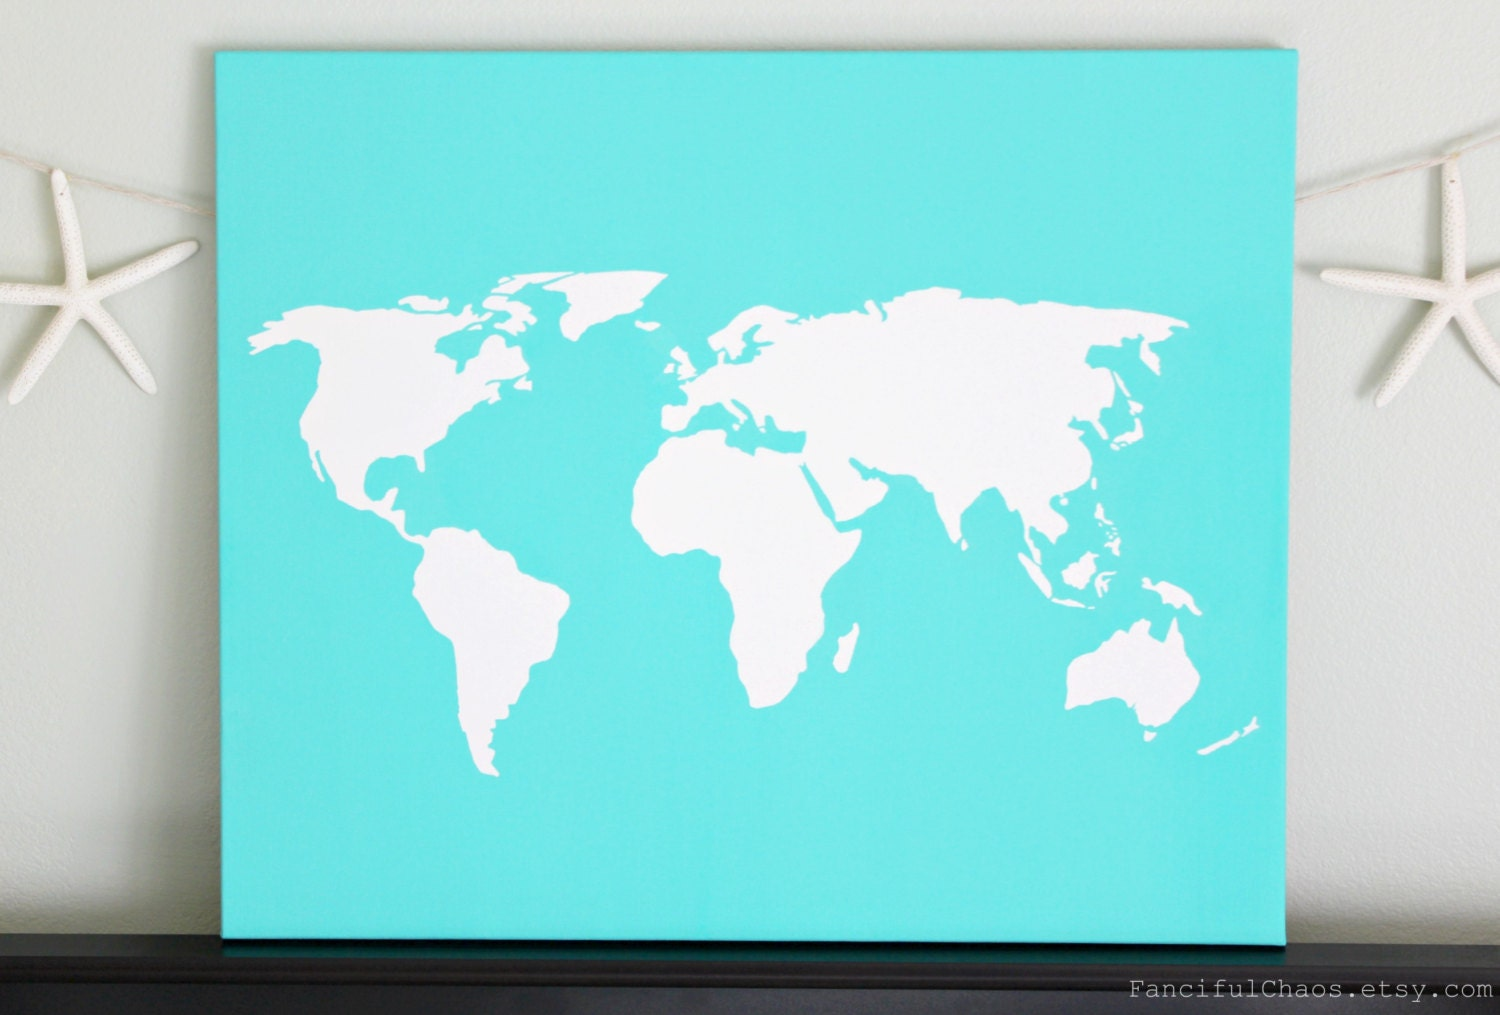 World diy customize map 20x24 canvas acrylic painting wall zoom gumiabroncs Gallery